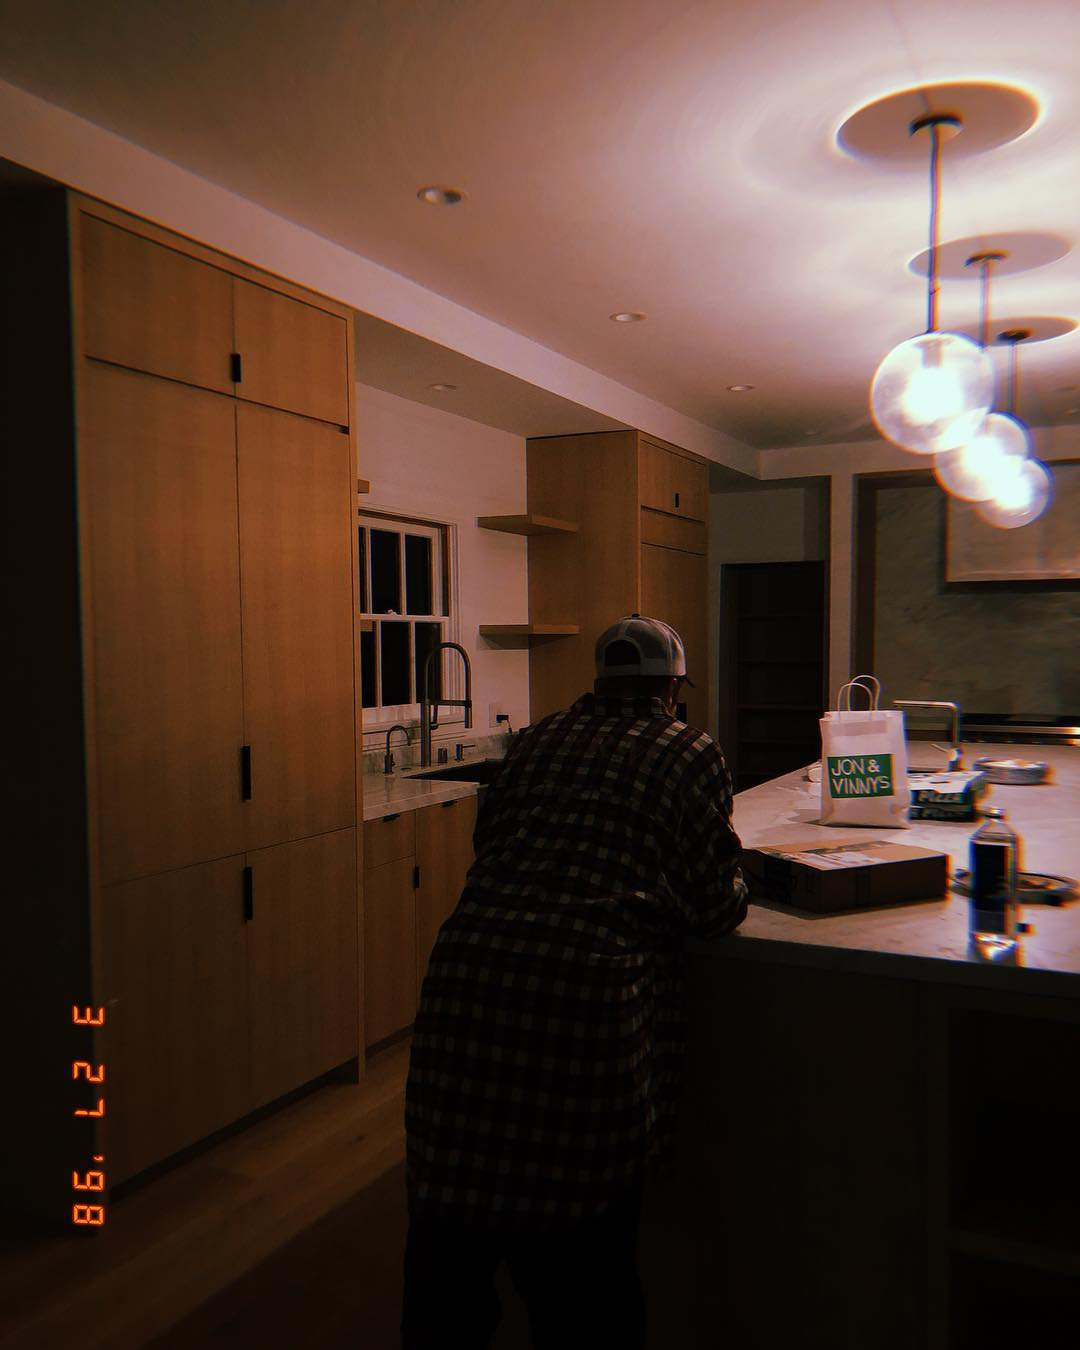 Here's A Sneak Peek Inside The Biebers New Mansion In Beverly Hills 12 the biebers new mansion Here's A Sneak Peek Inside The Biebers New Mansion In Beverly Hills Heres A Sneak Peek Inside The Biebers New Mansion In Beverly Hills 12